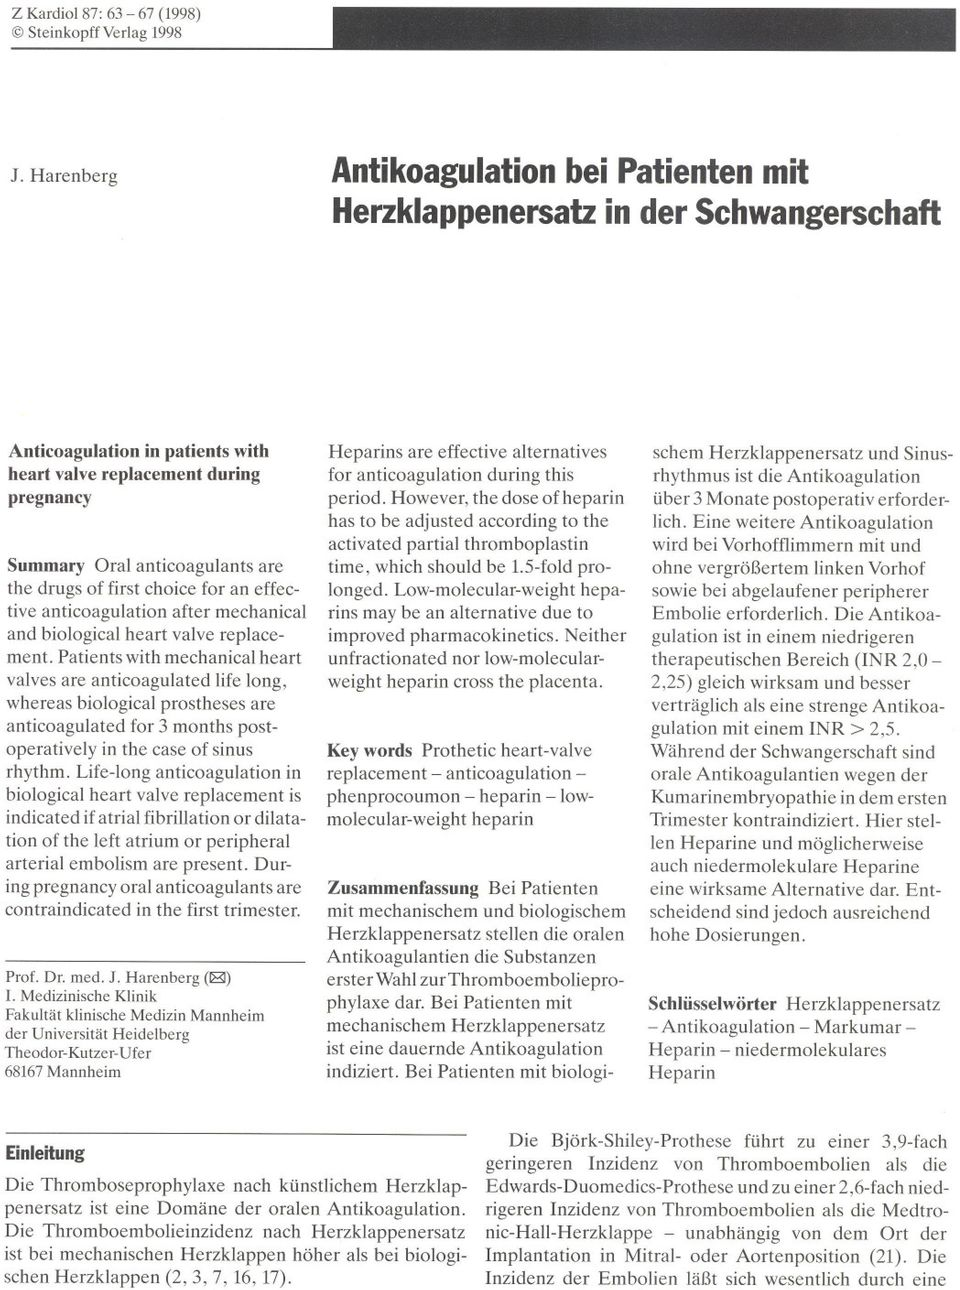 first choice für an effeclive anticoagulation after mechanical and biological heart valve replacement.